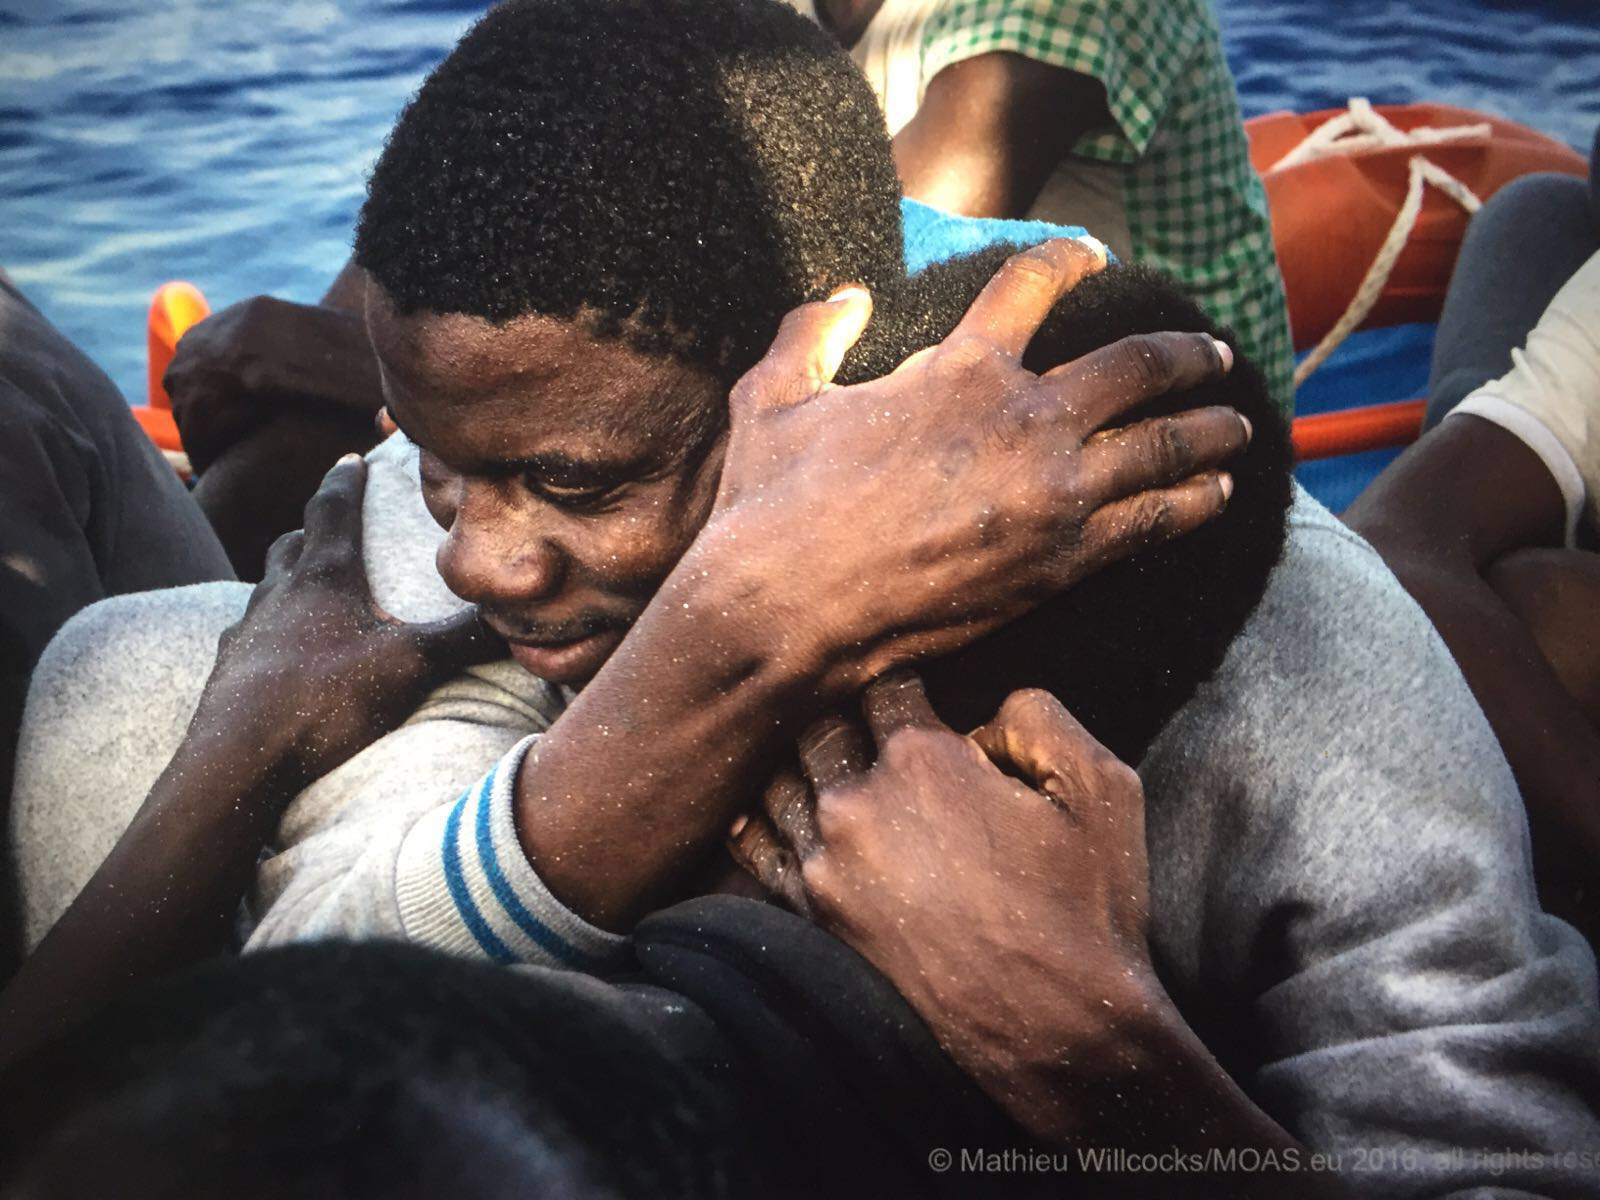 Rescuing Migrants In The Mediterranean Sea